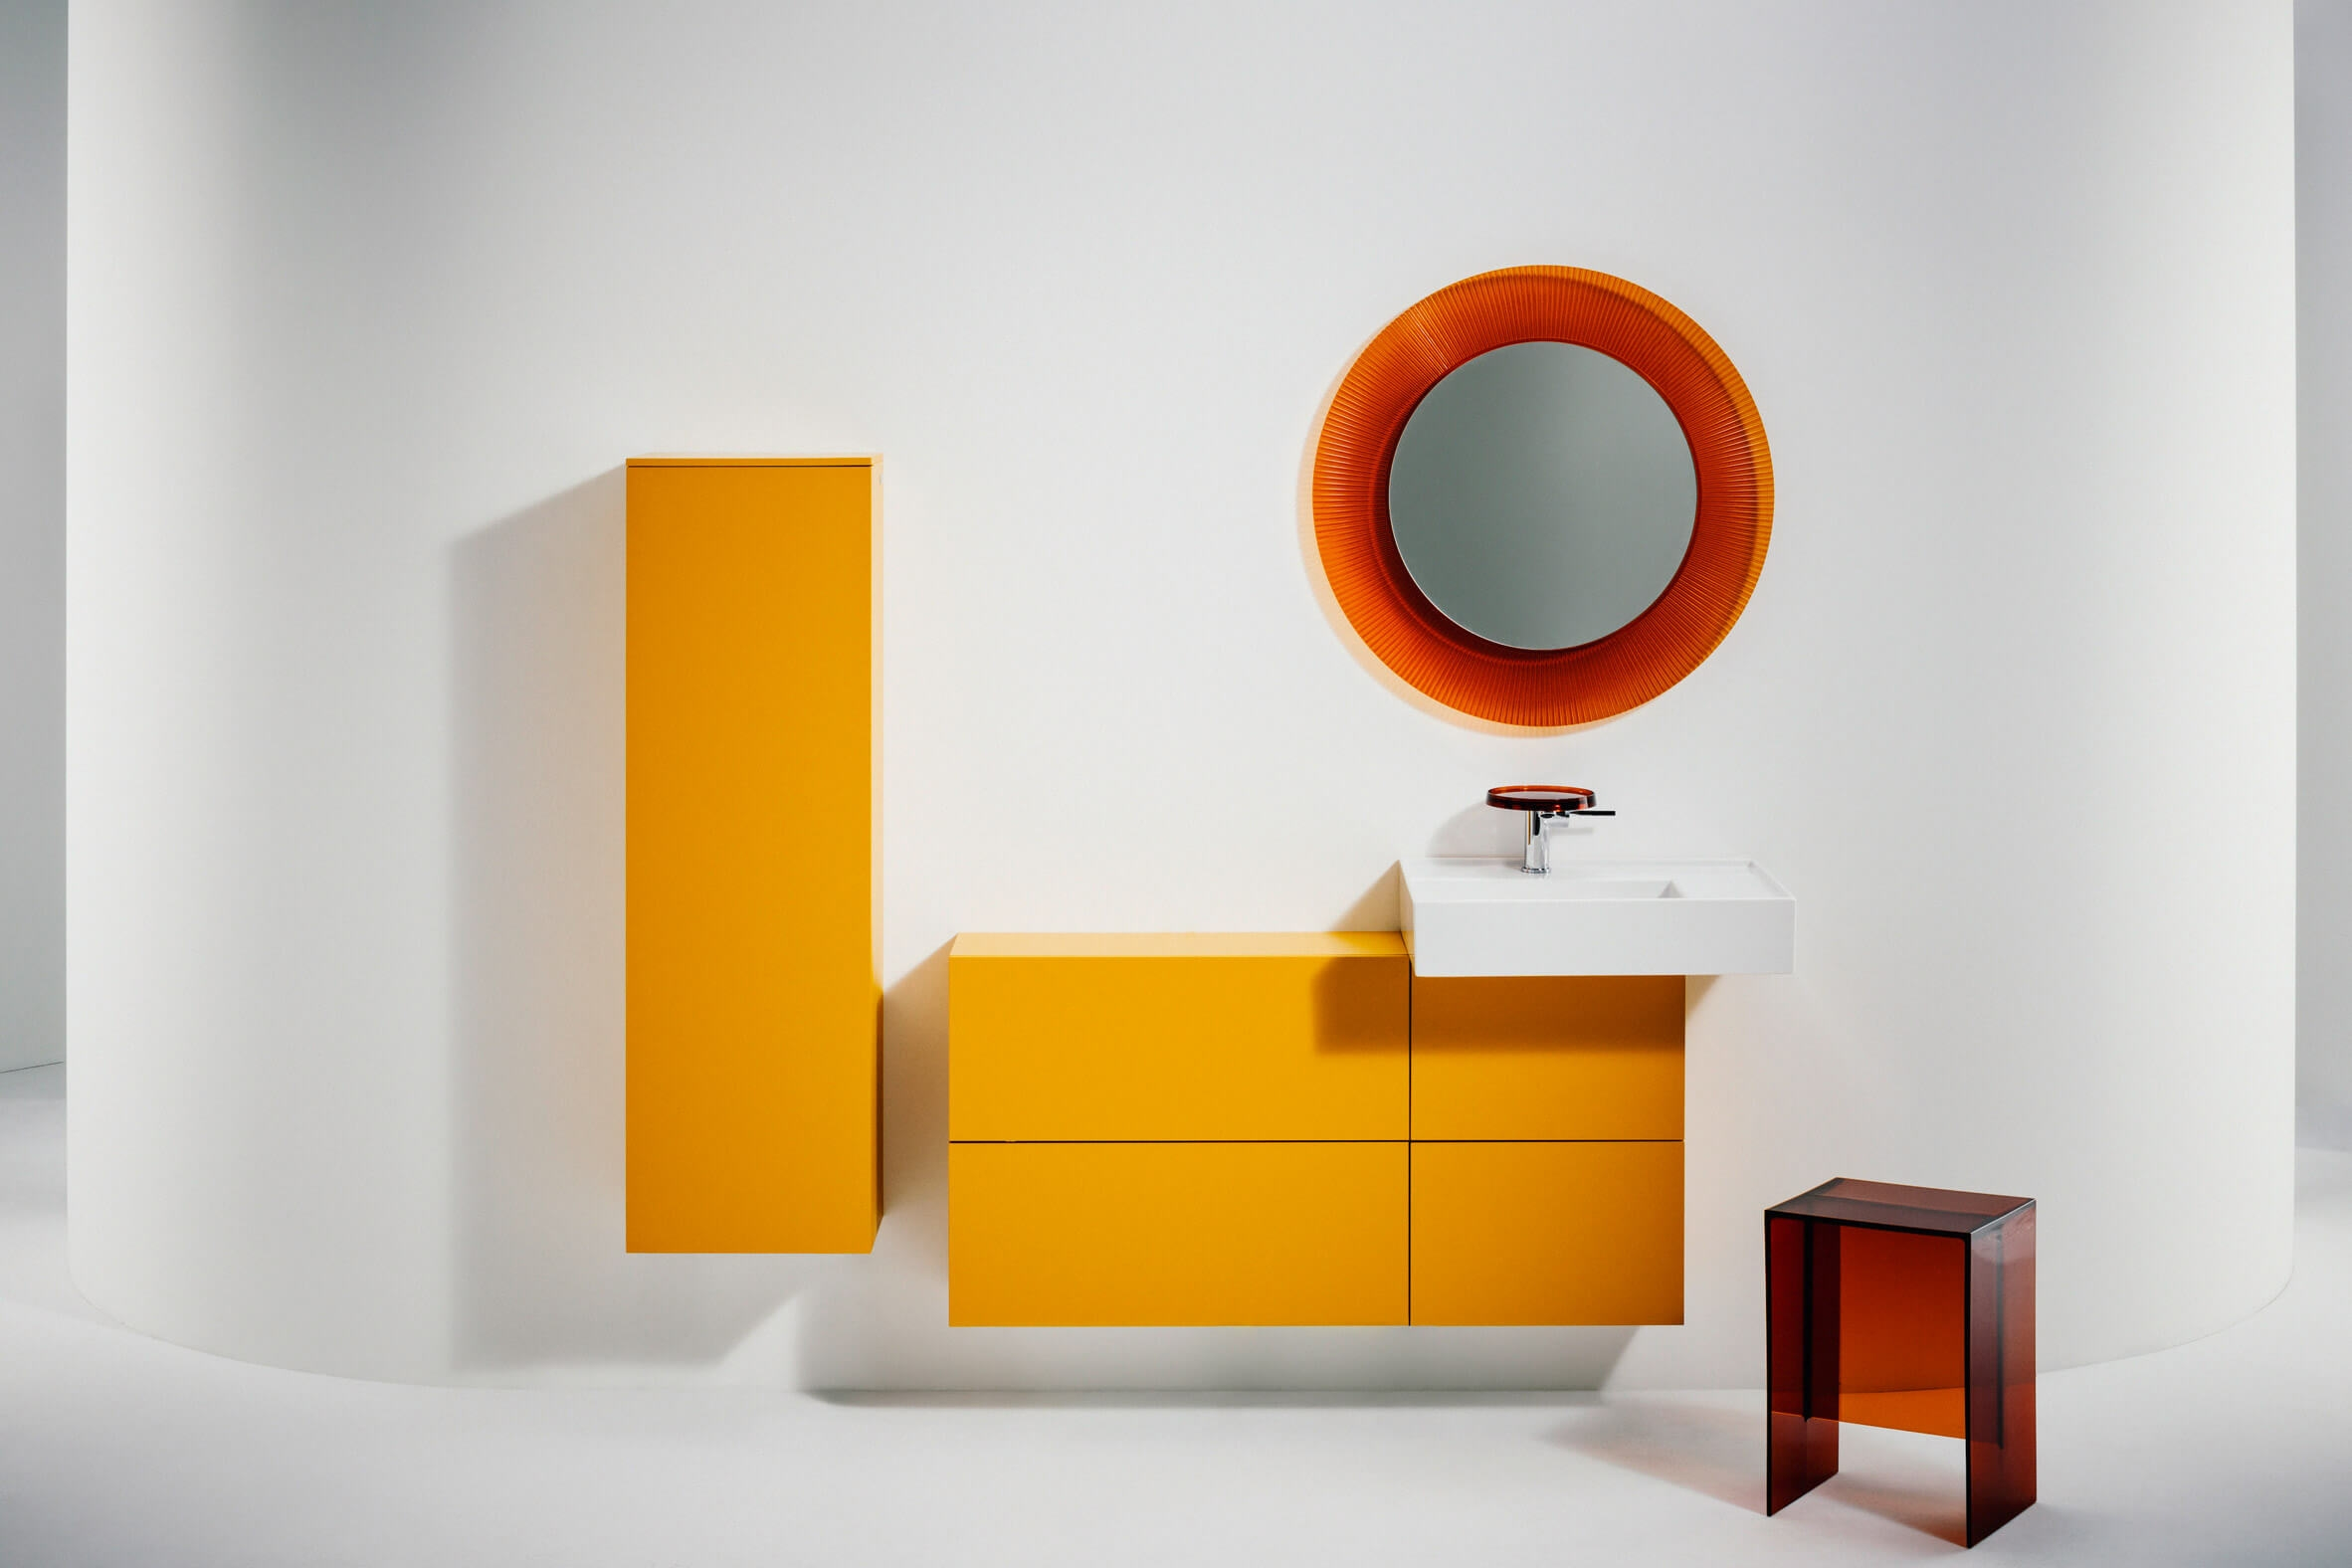 kartell by laufen bathroom products promotion dezeen 2364 col 0 1